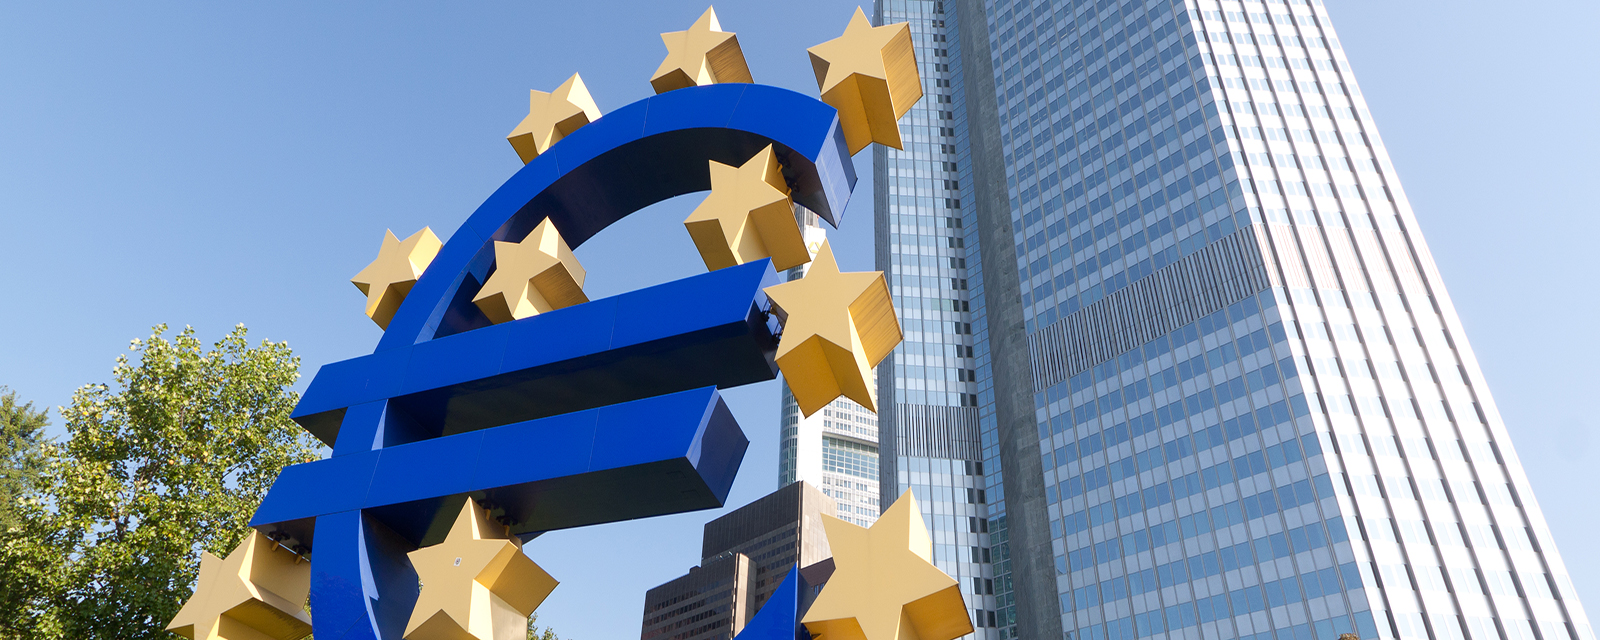 Contraction de l'activité en zone euro au 4e trimestre suite au reconfinement